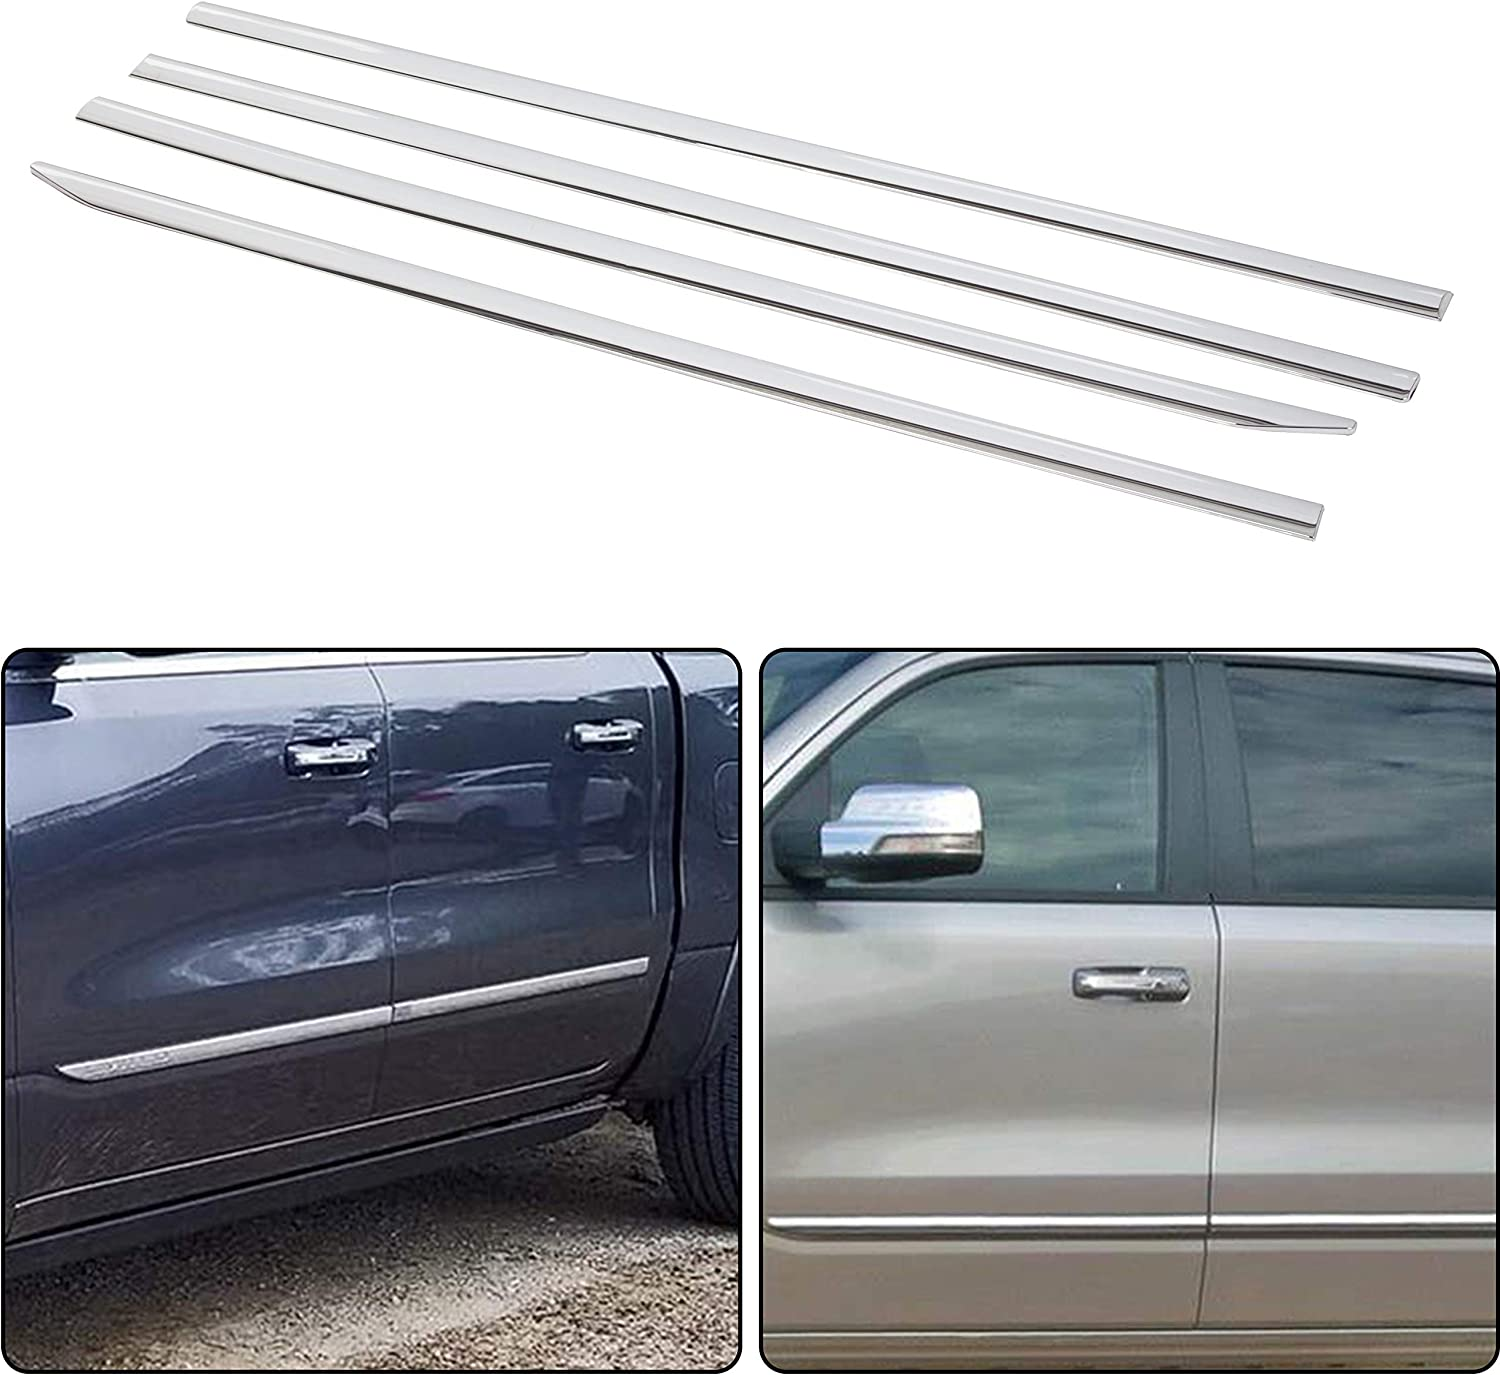 ECOTRIC Chrome Body Side Molding Trim Mouldings for Dodge Ram 1500 2019-2020 Crew Cab